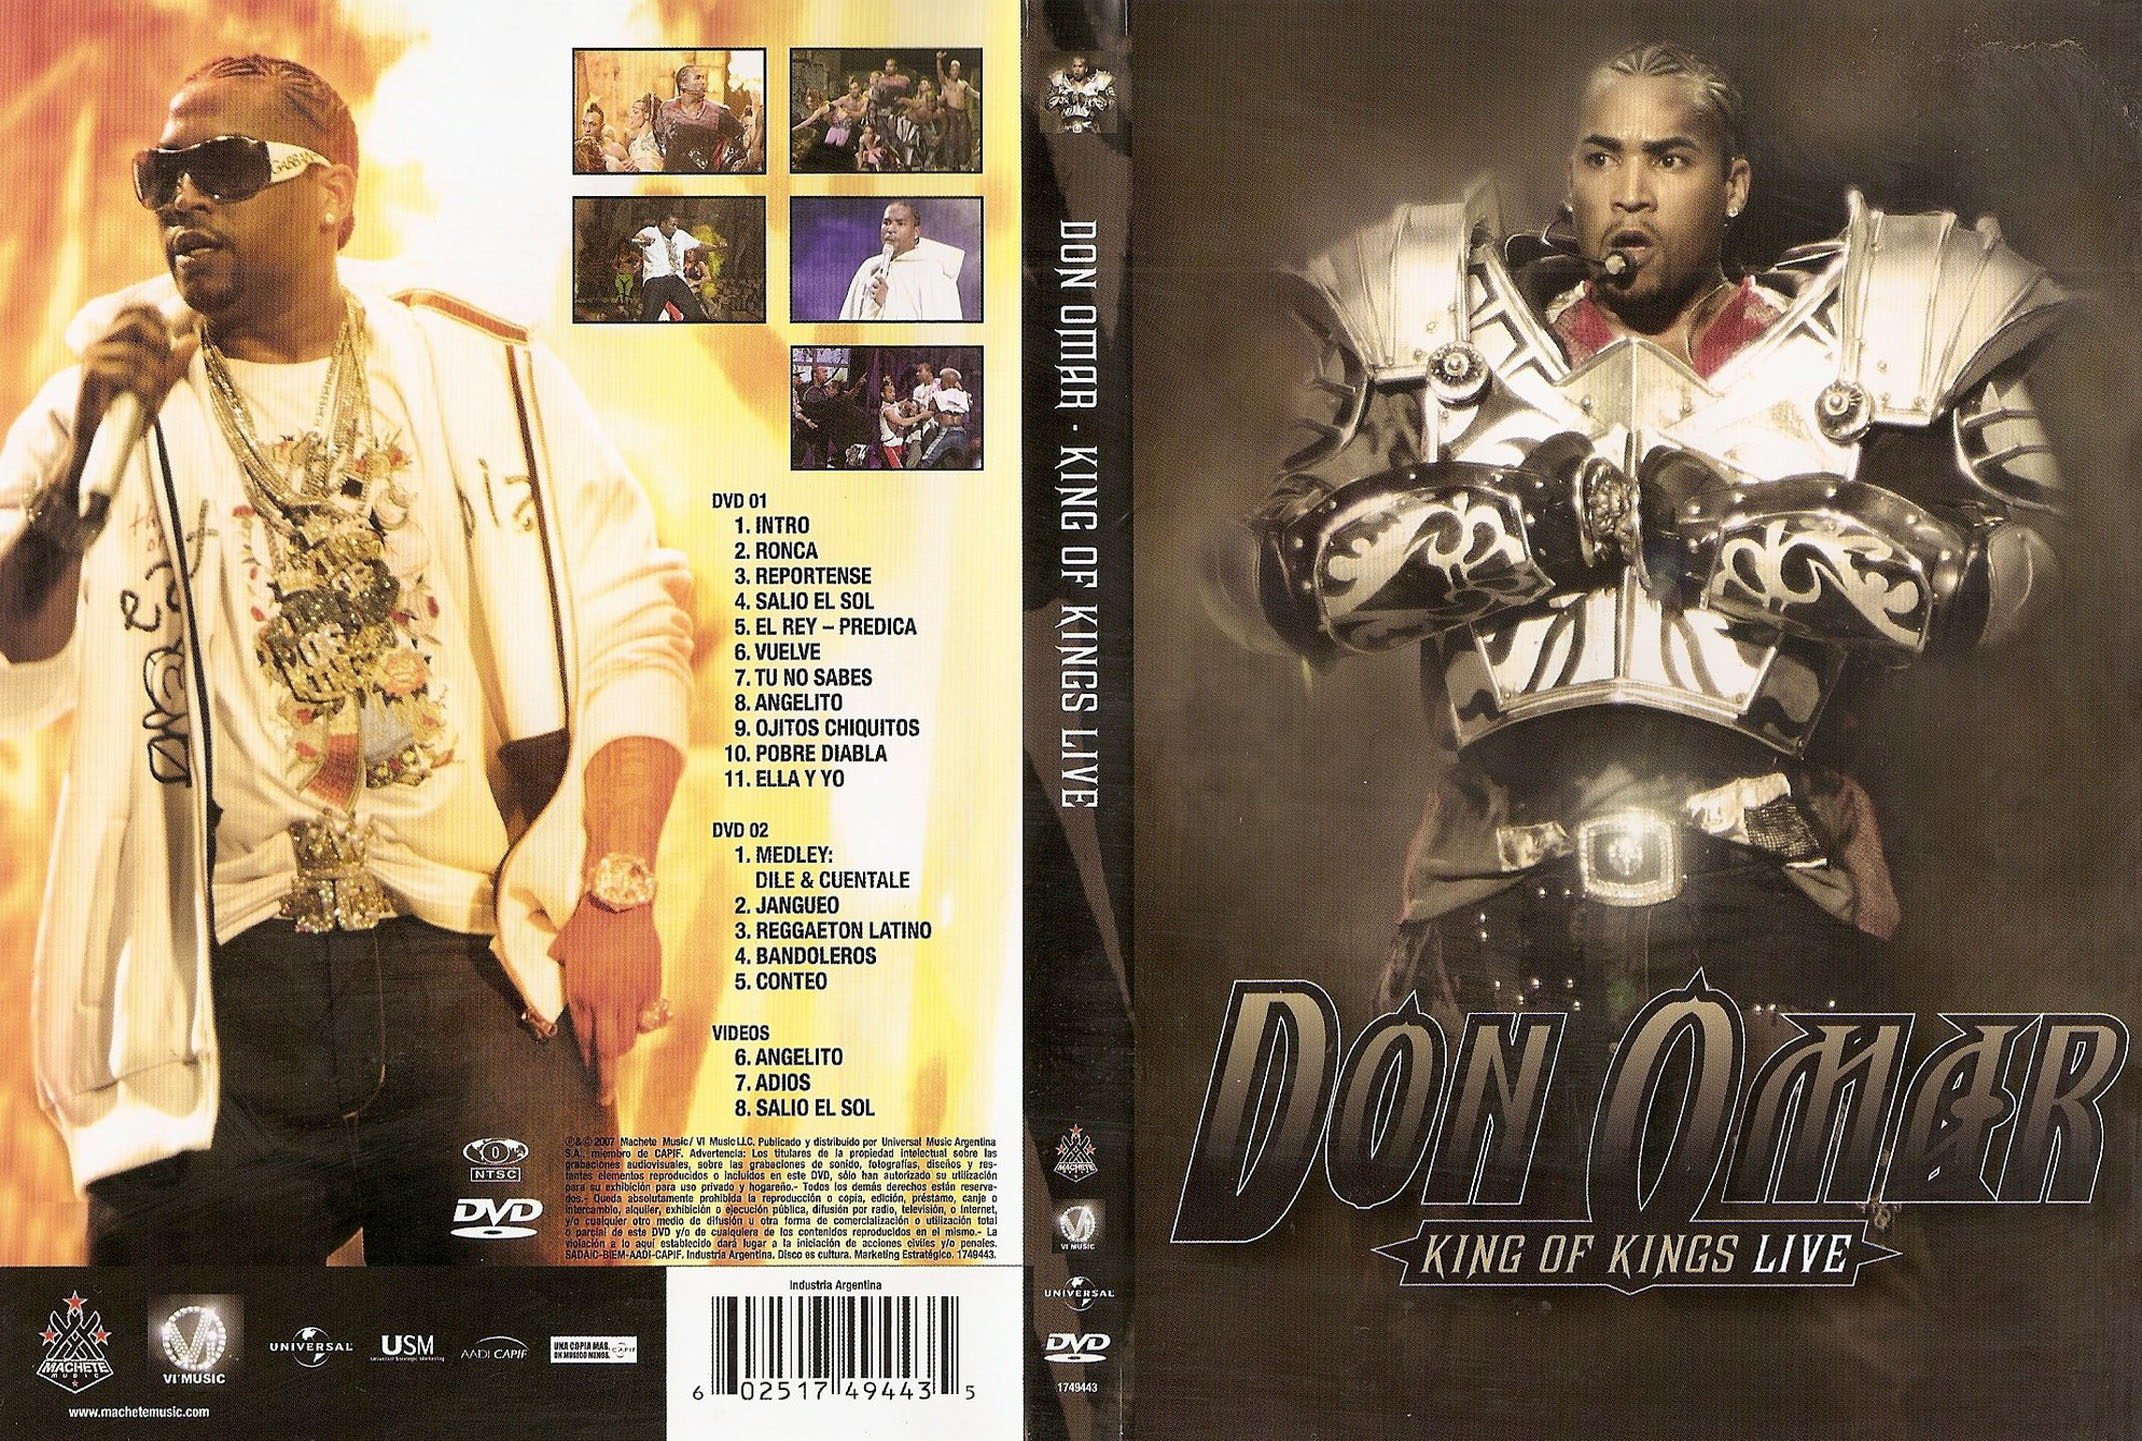 DON OMAR - KING OF KINGS LIVE DVD X 2 - DVD x 2